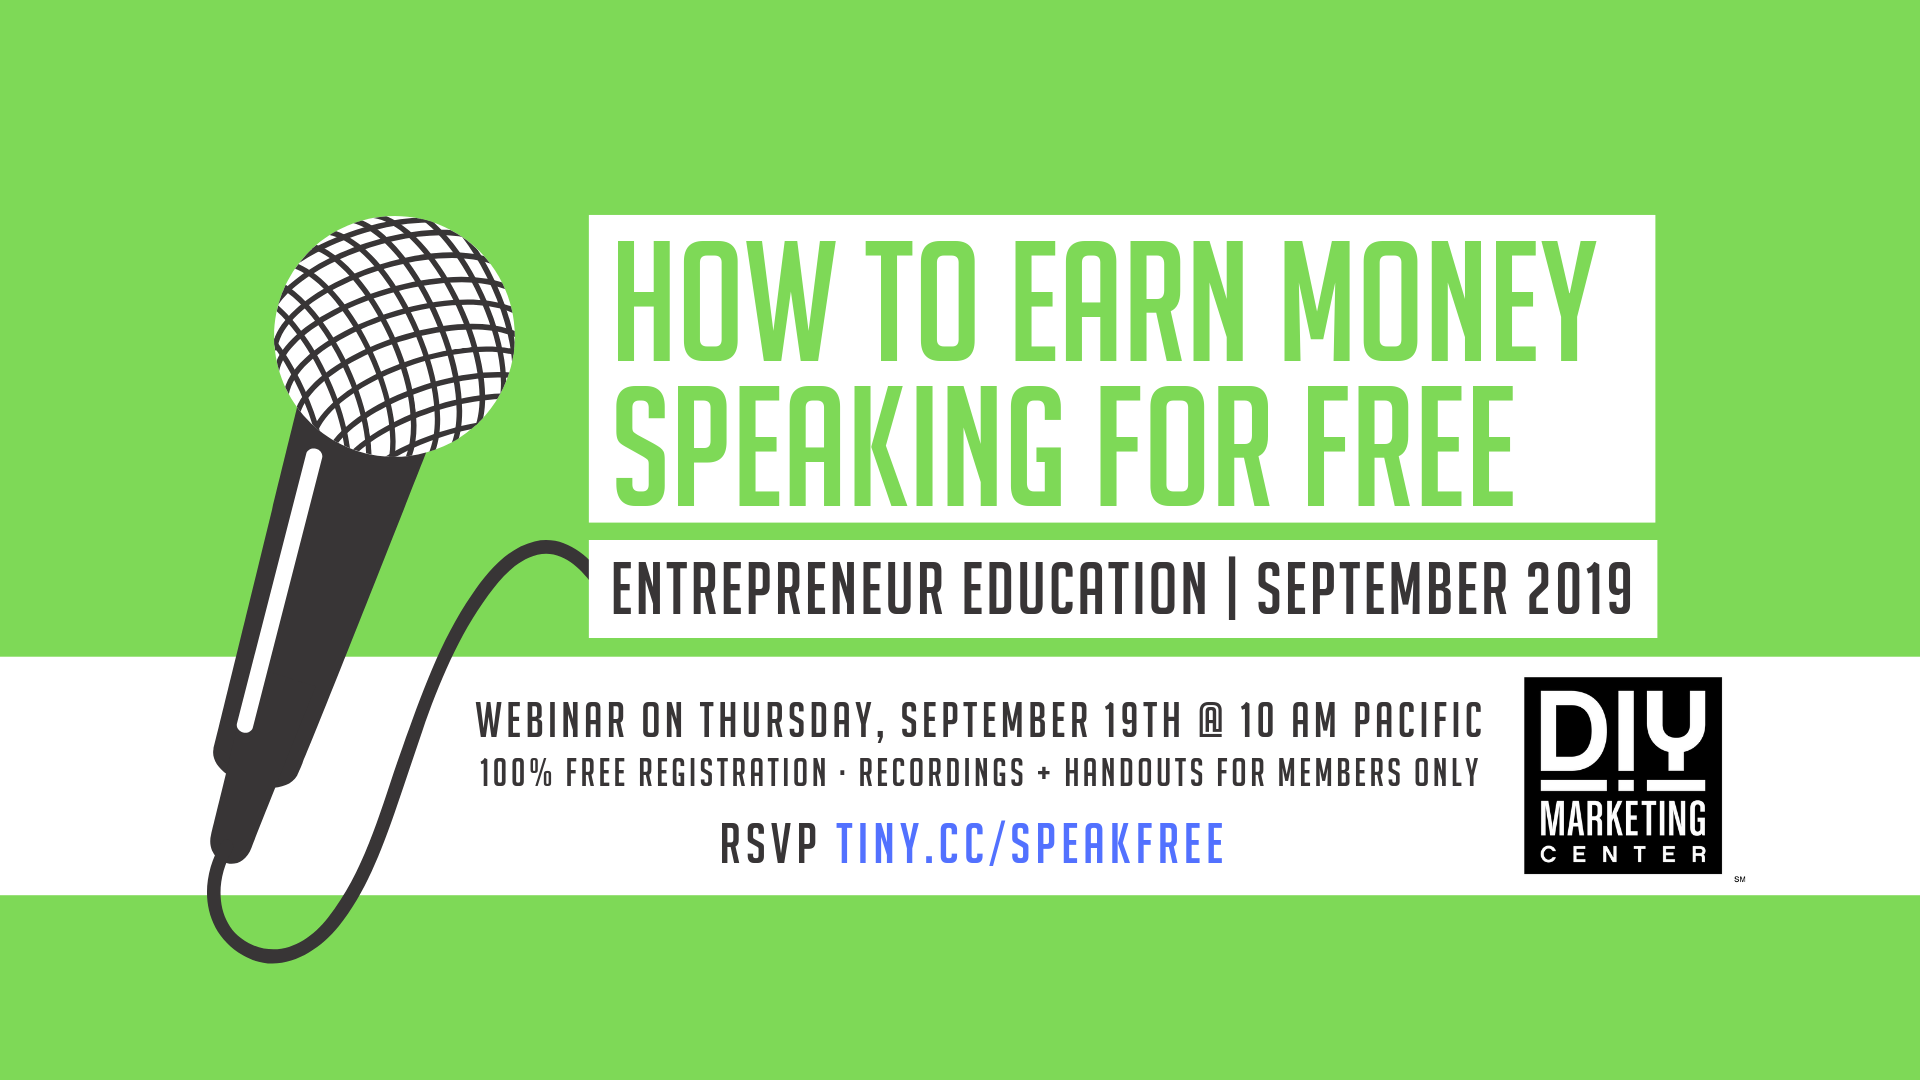 How to Earn Money Speaking for Free Webinar